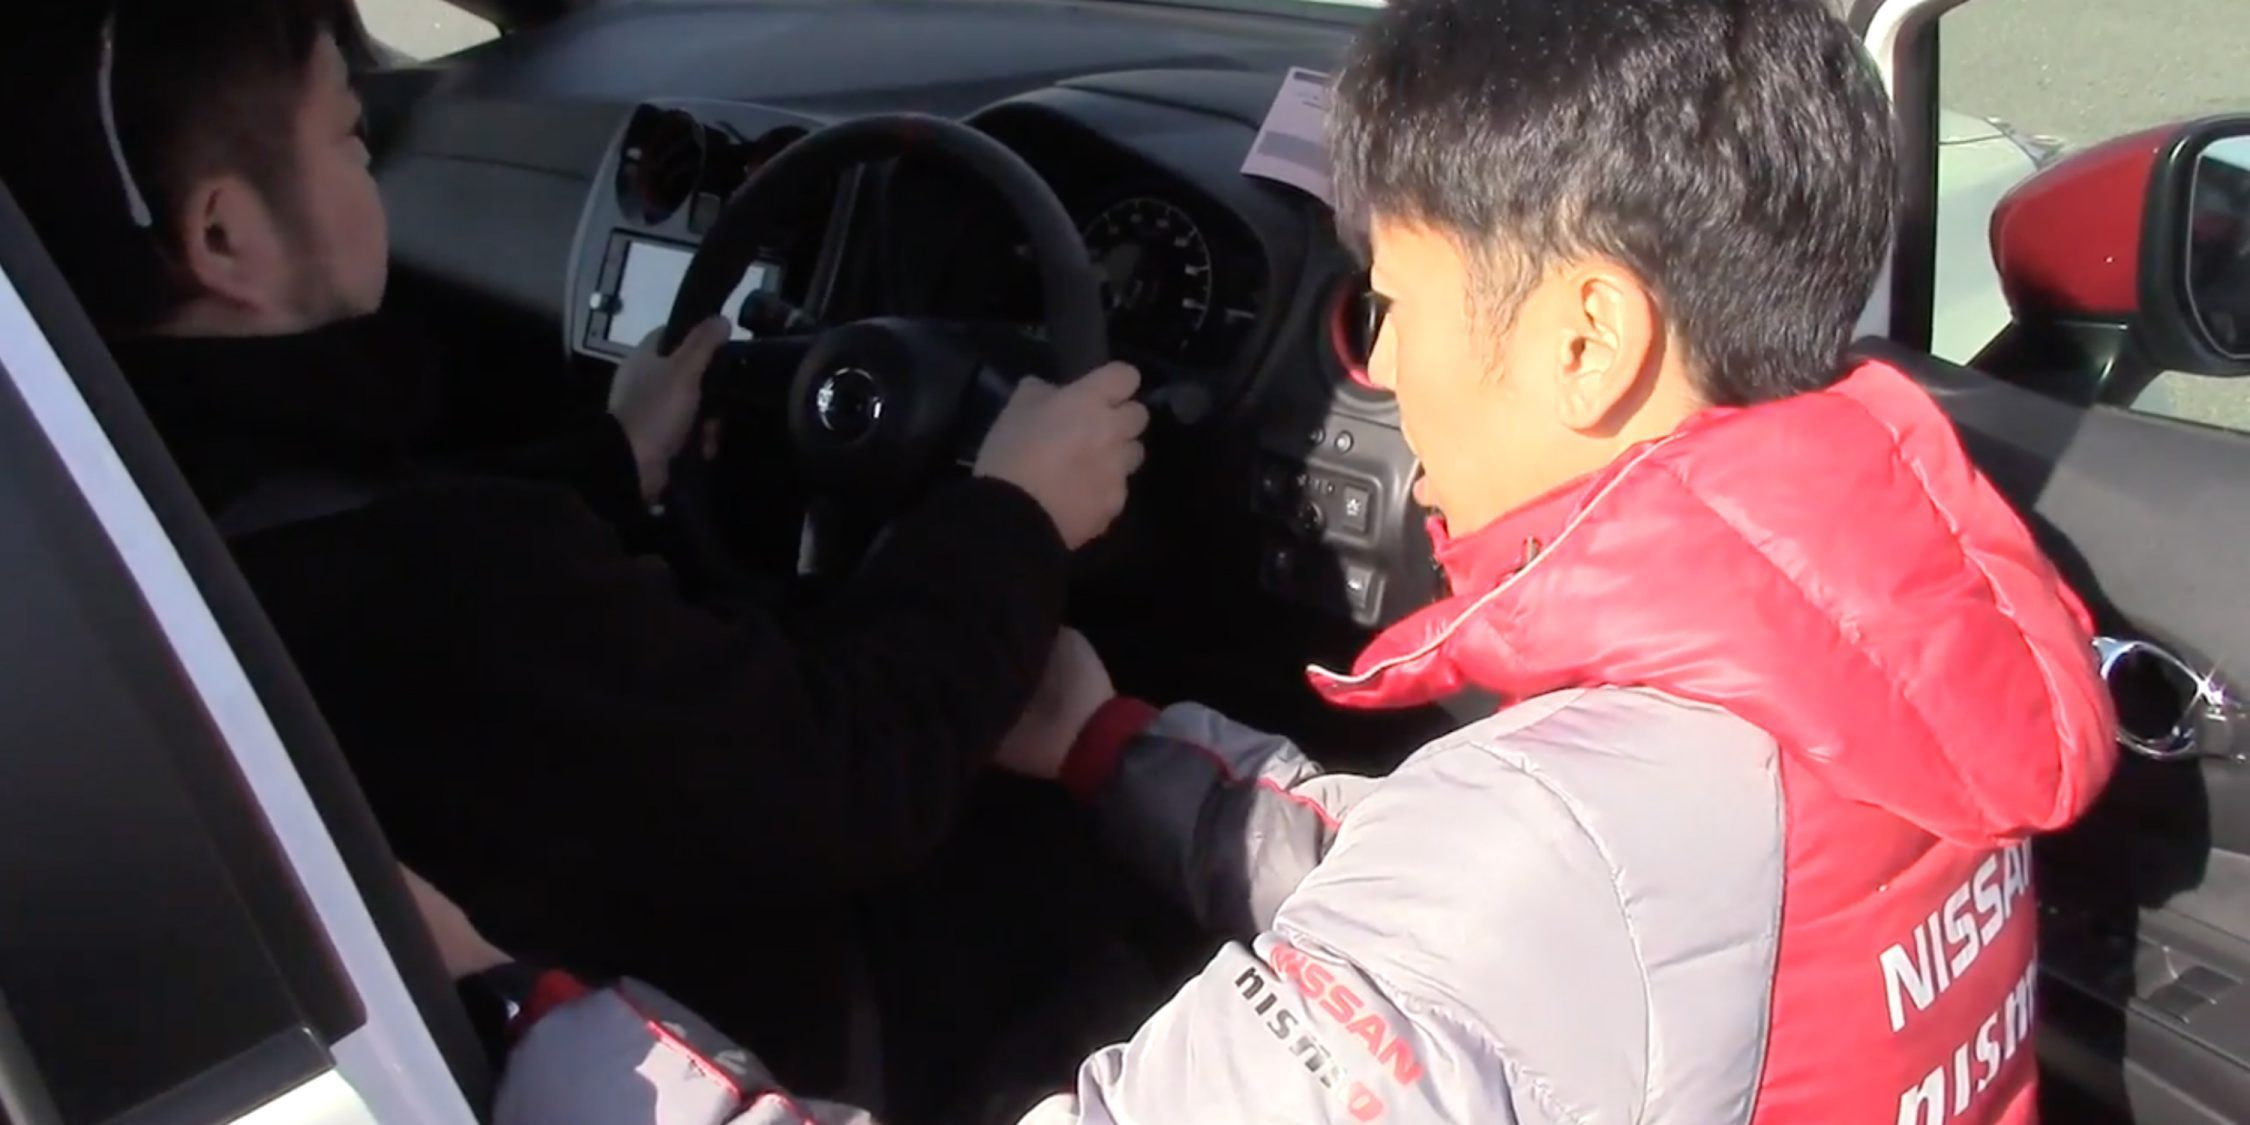 NISMO Driving Academy instructor with student